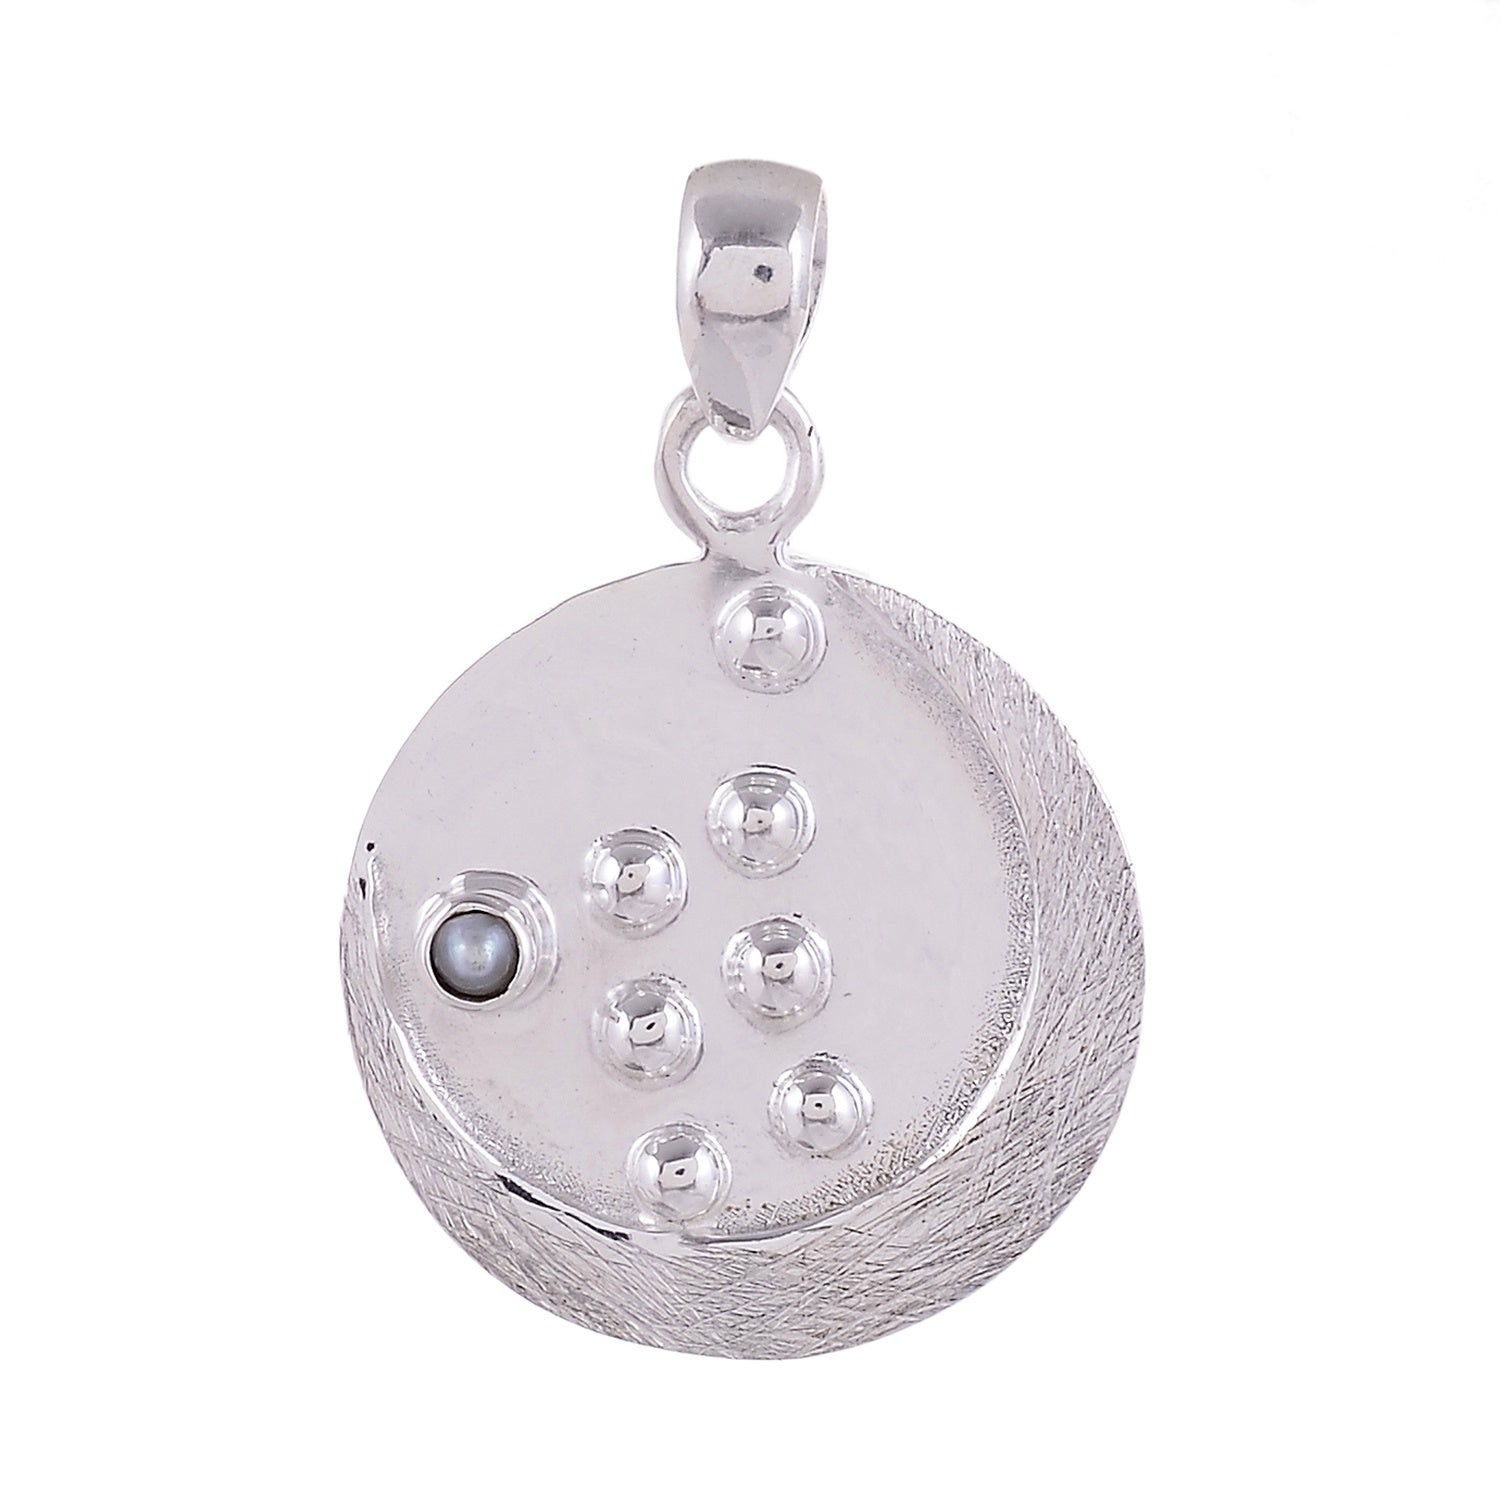 Sterling Silver Zodiac Constelation Pendants - Available in all 12 Zodiac signs!